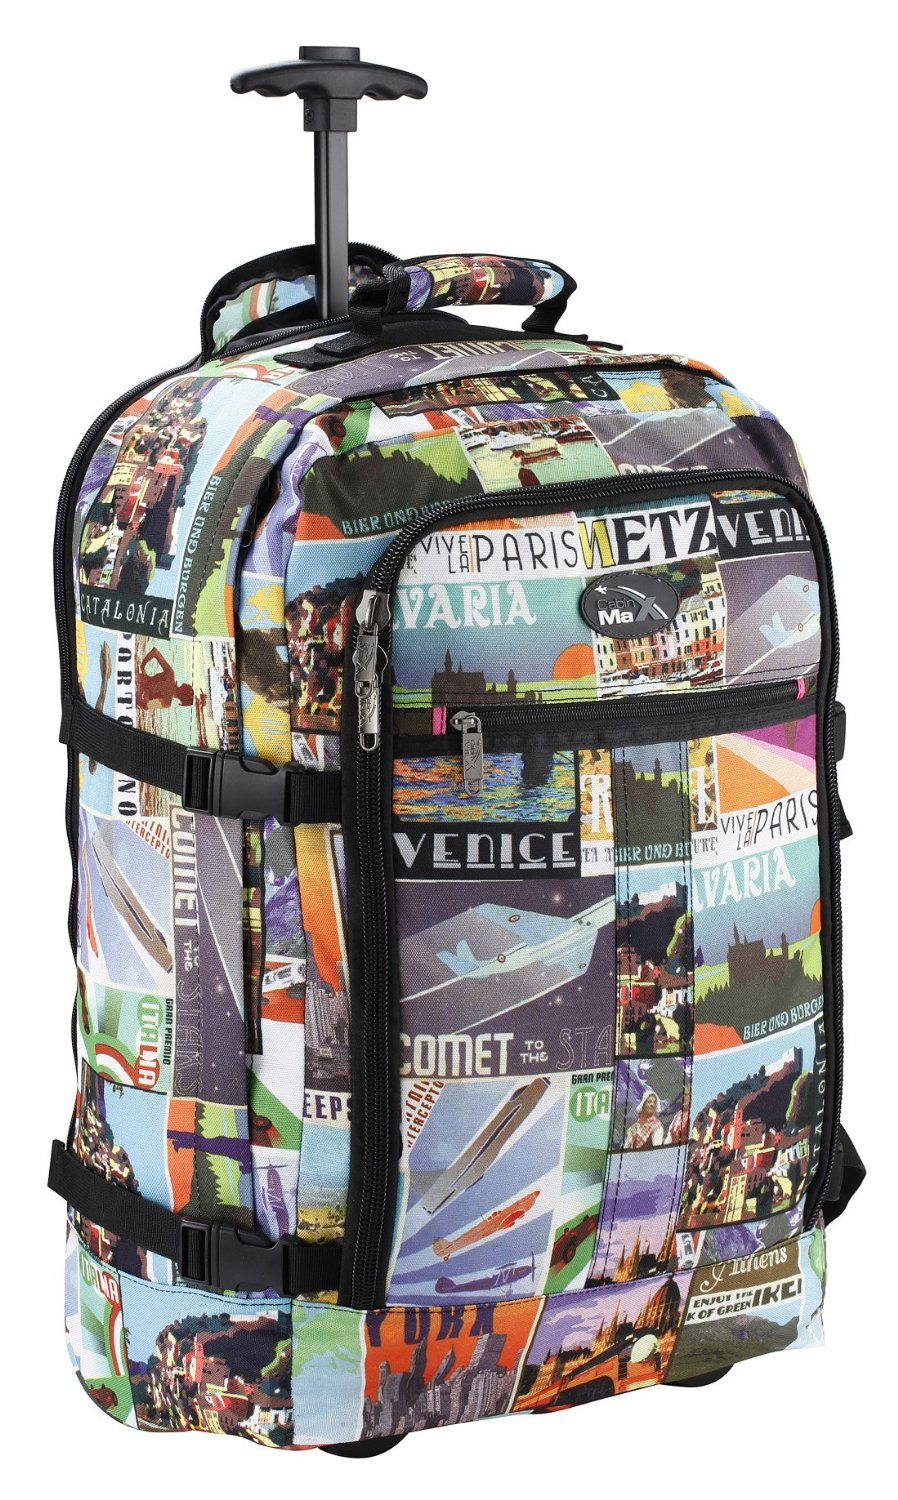 Cabin Max Postcard Carry on Trolley Backpack World